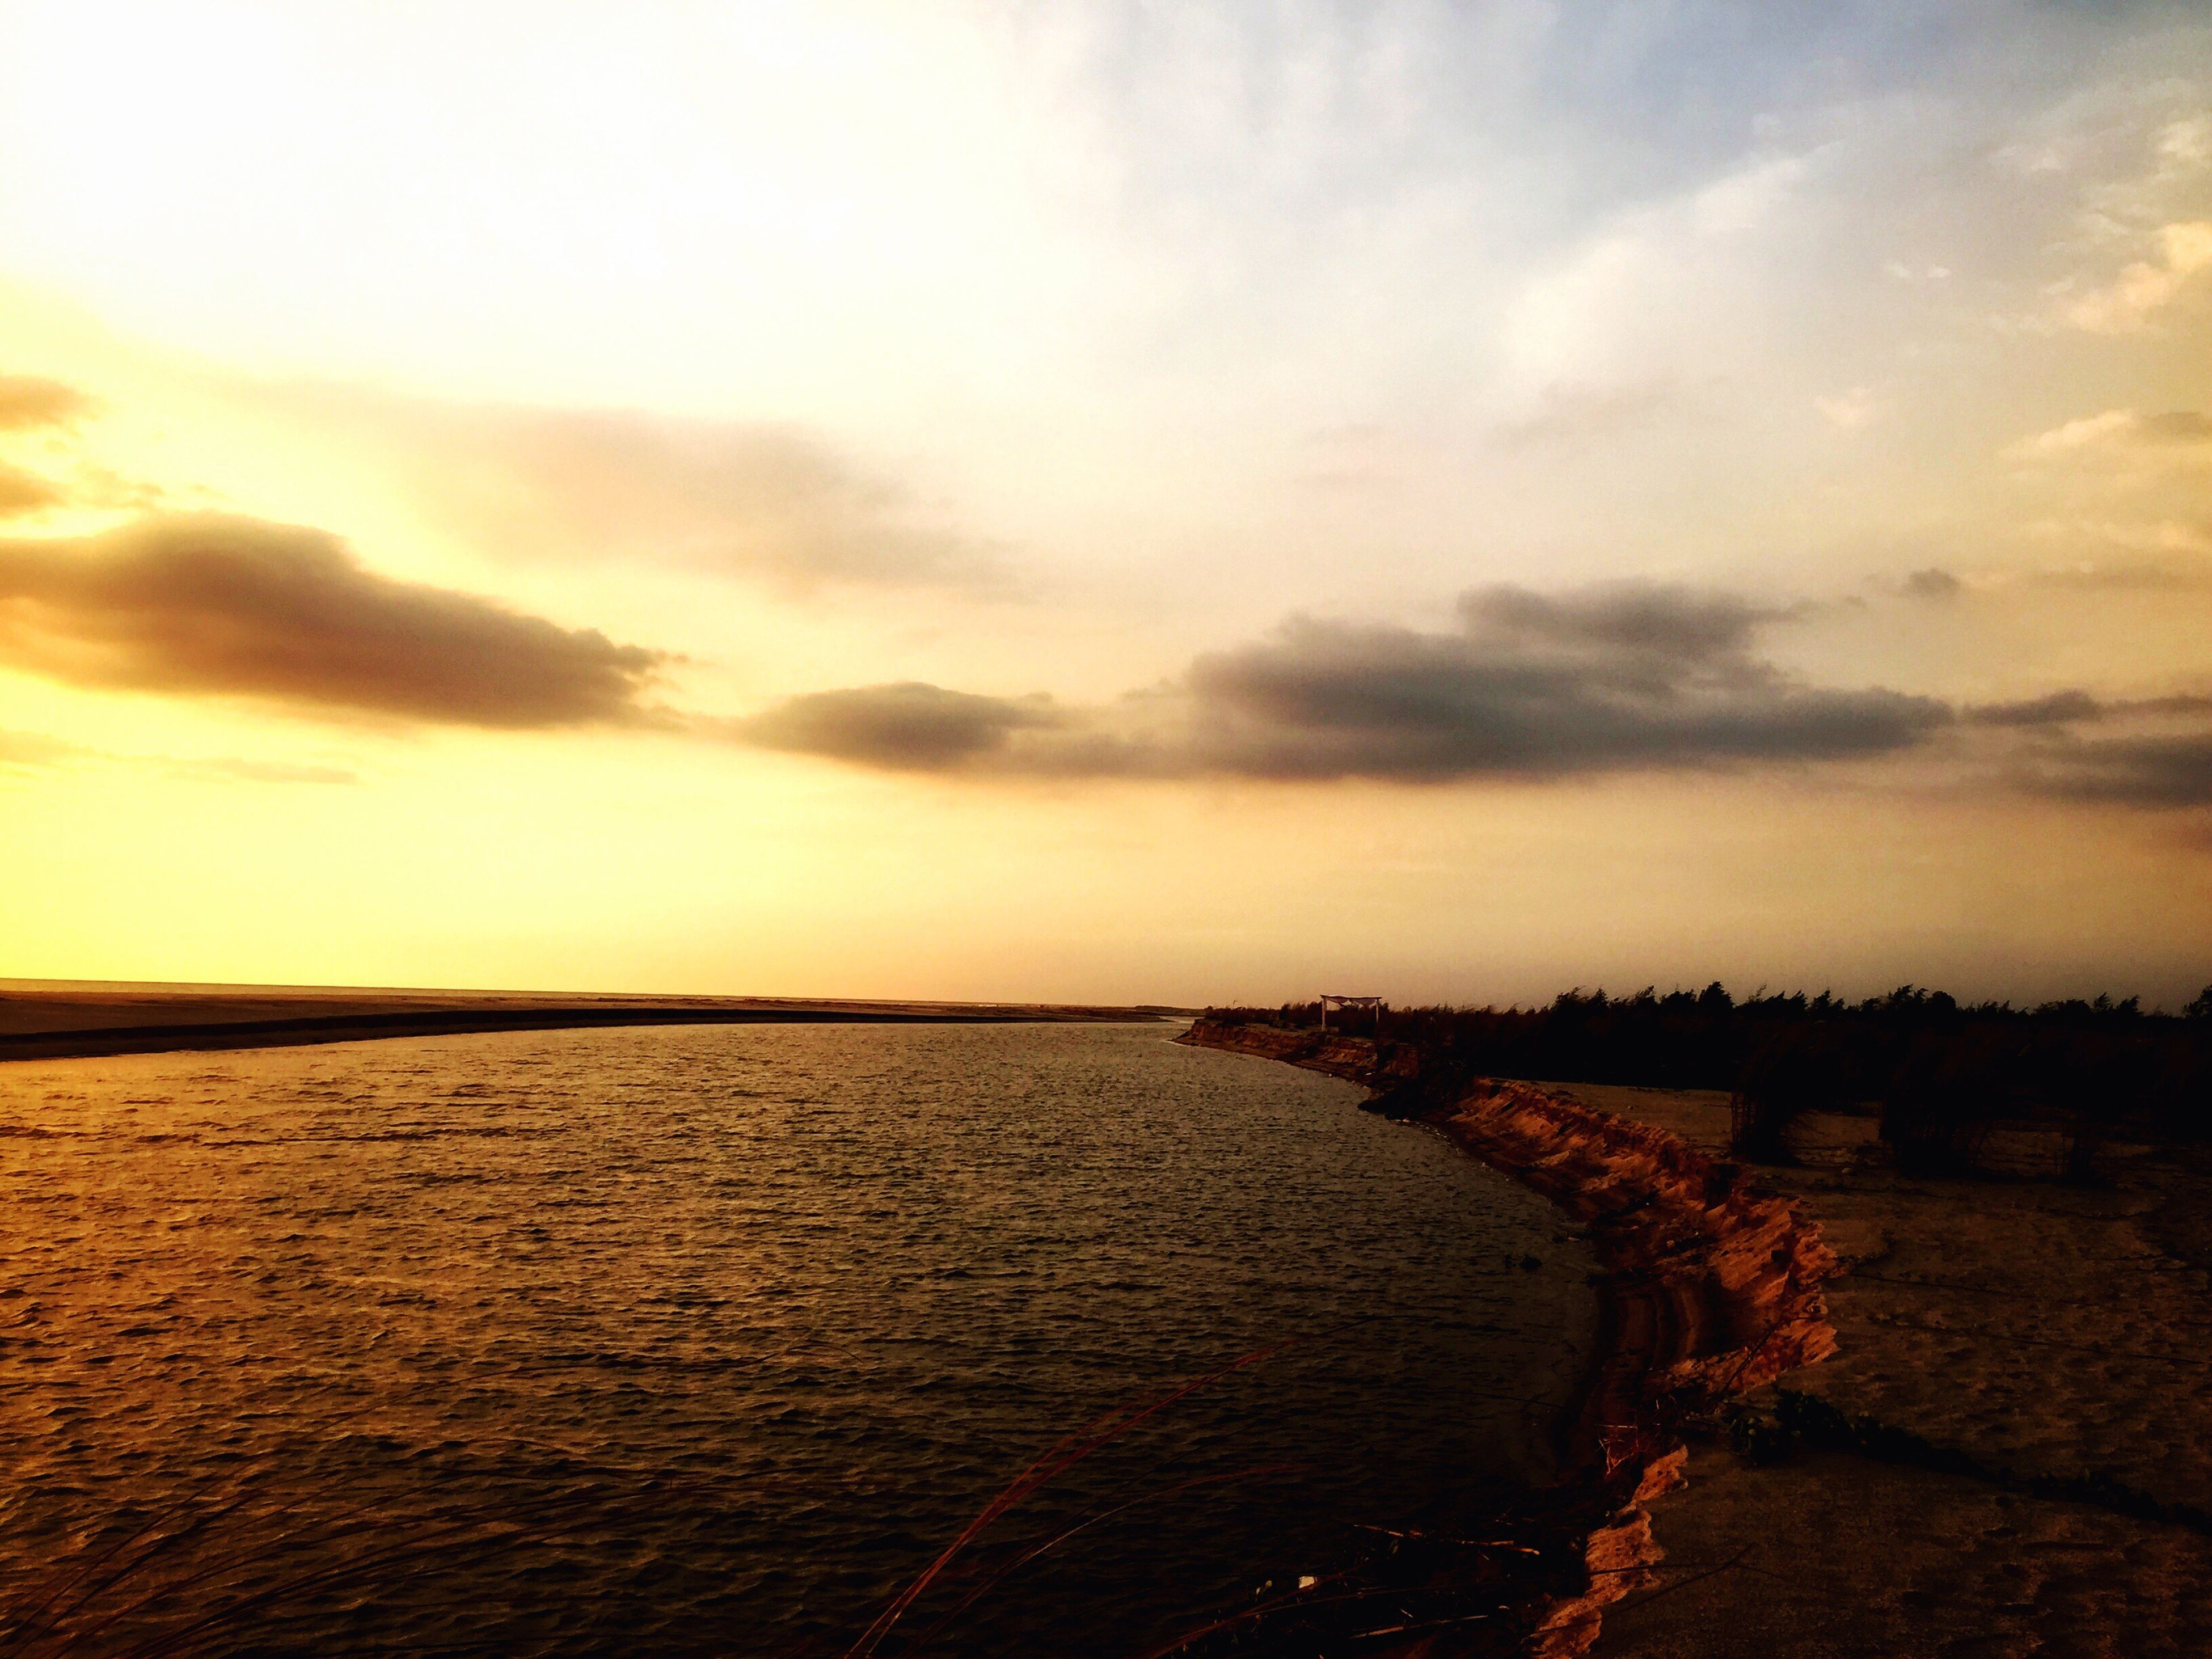 water, sky, sunset, nature, tranquility, scenics, beauty in nature, no people, outdoors, sea, beach, day